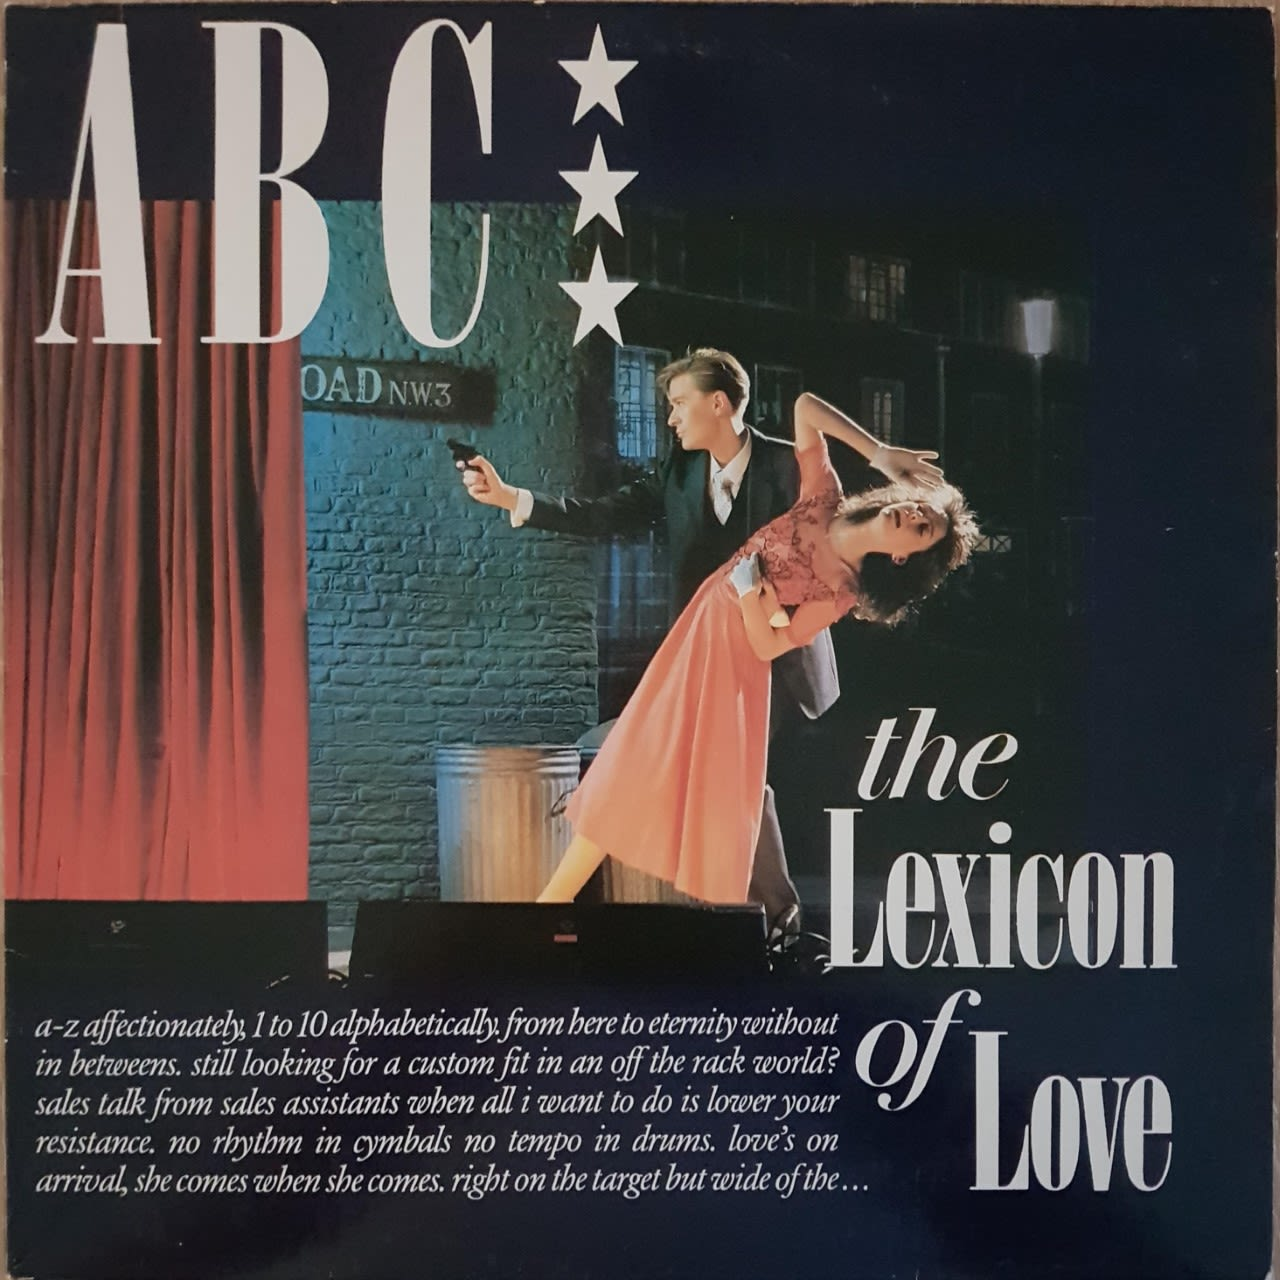 ABC The lexicon of love LP undefined